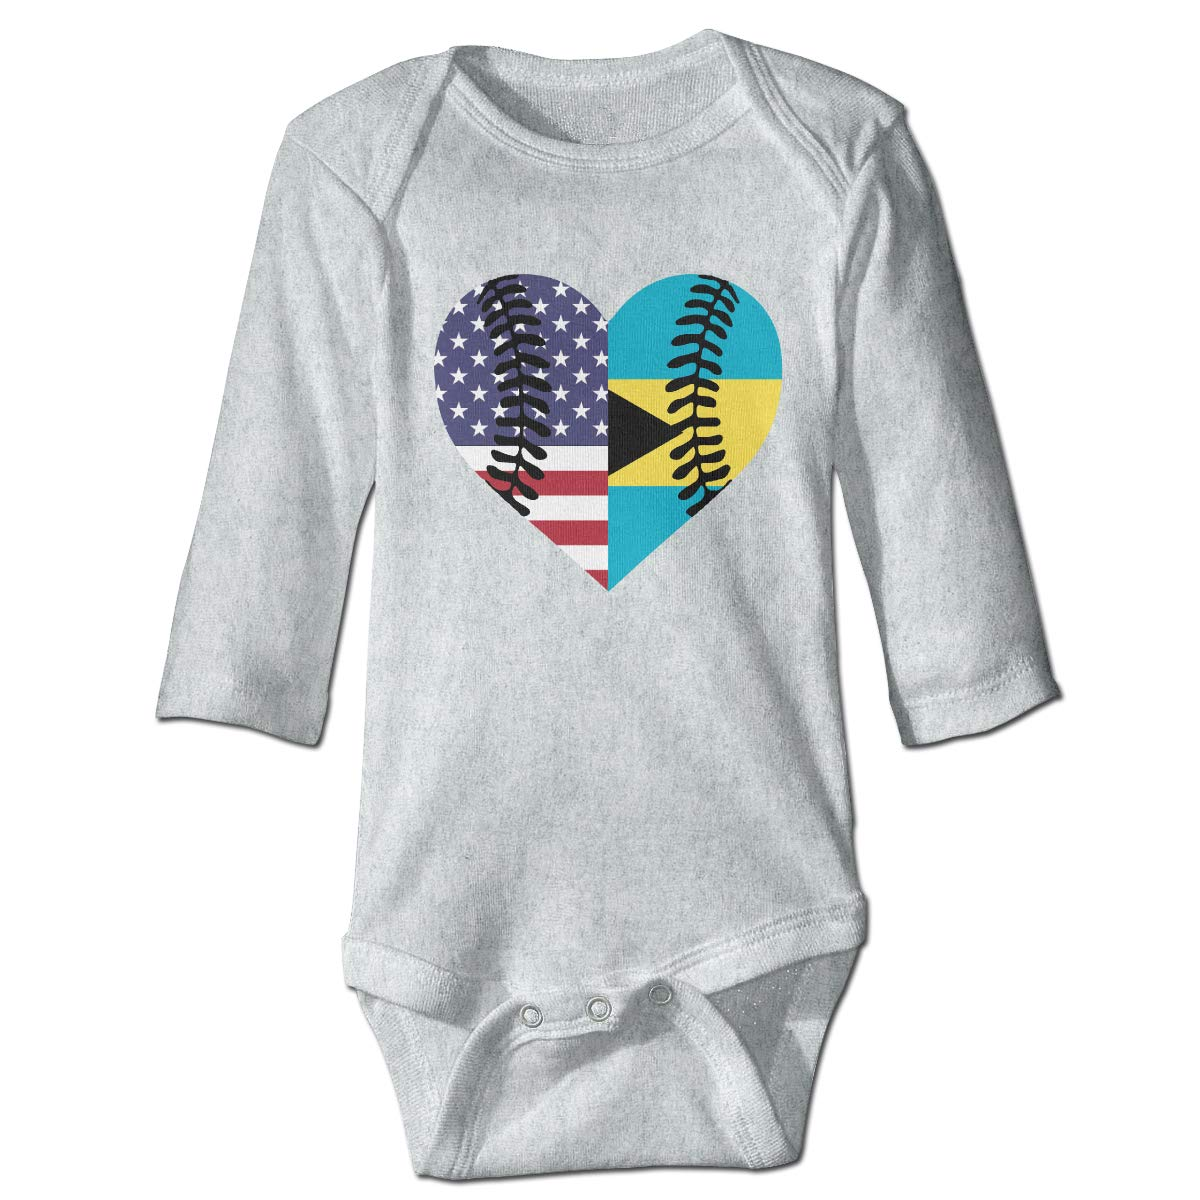 A14UBP Newborn Baby Boys Girls Long Sleeve Jumpsuit Romper Bahamas USA Flag Half Baseball Unisex Playsuit